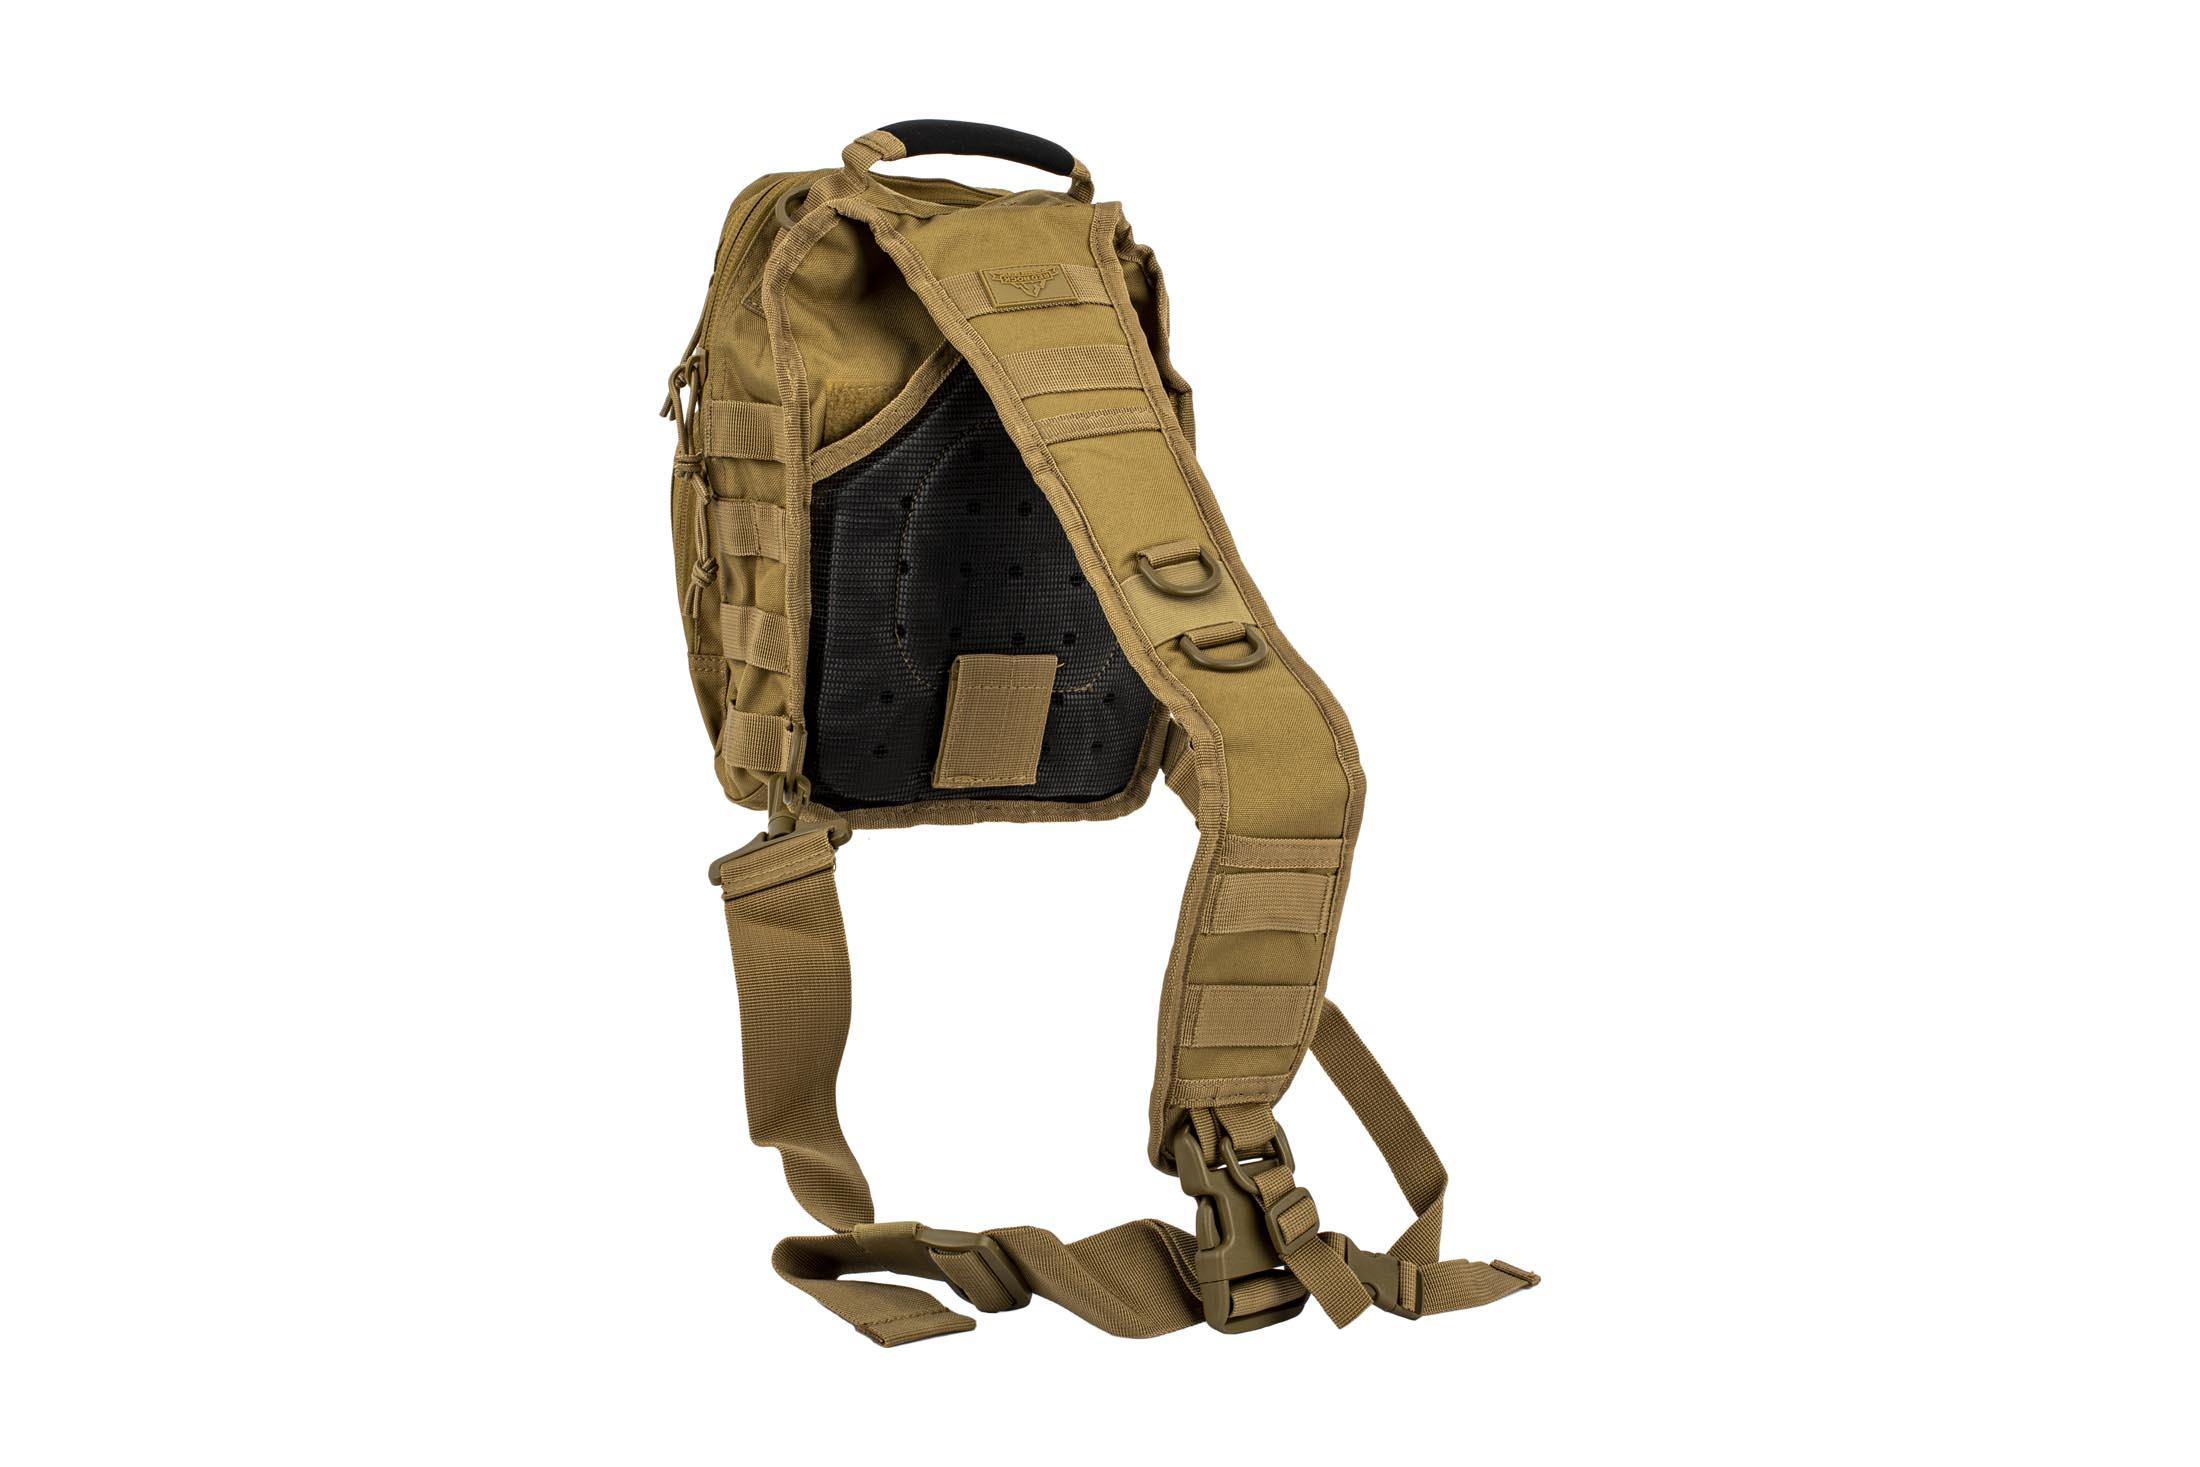 The Red Rock Gear Rover Sling Backpack features breathable mesh material